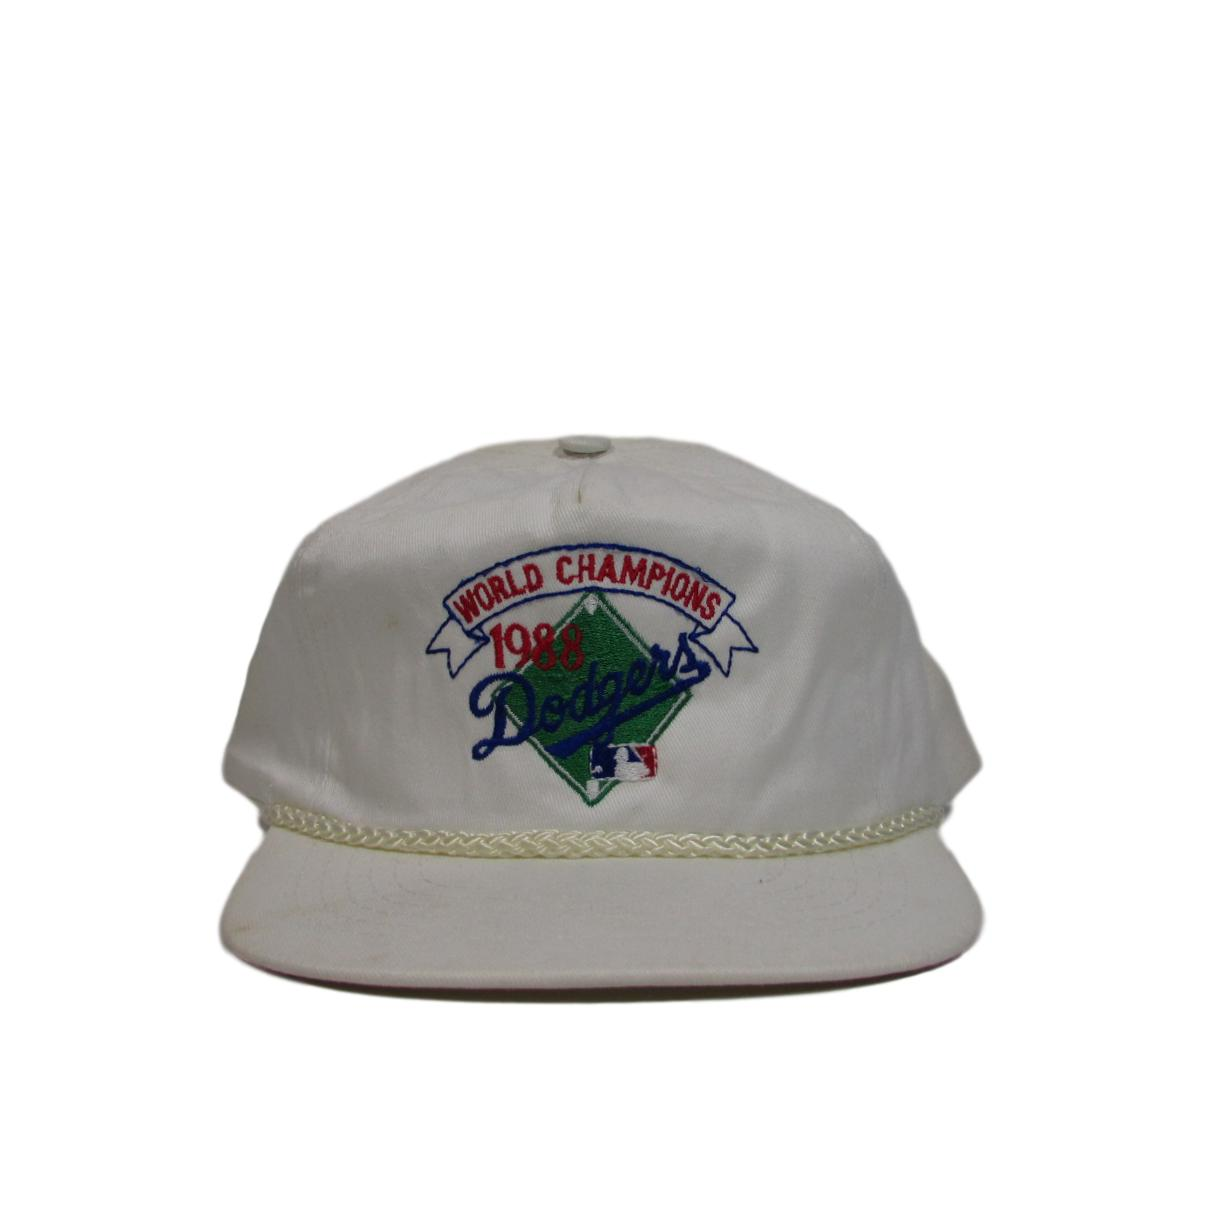 Los Angeles Dodgers 1988 World Series Champions Deadstock Twill Snapback Hat